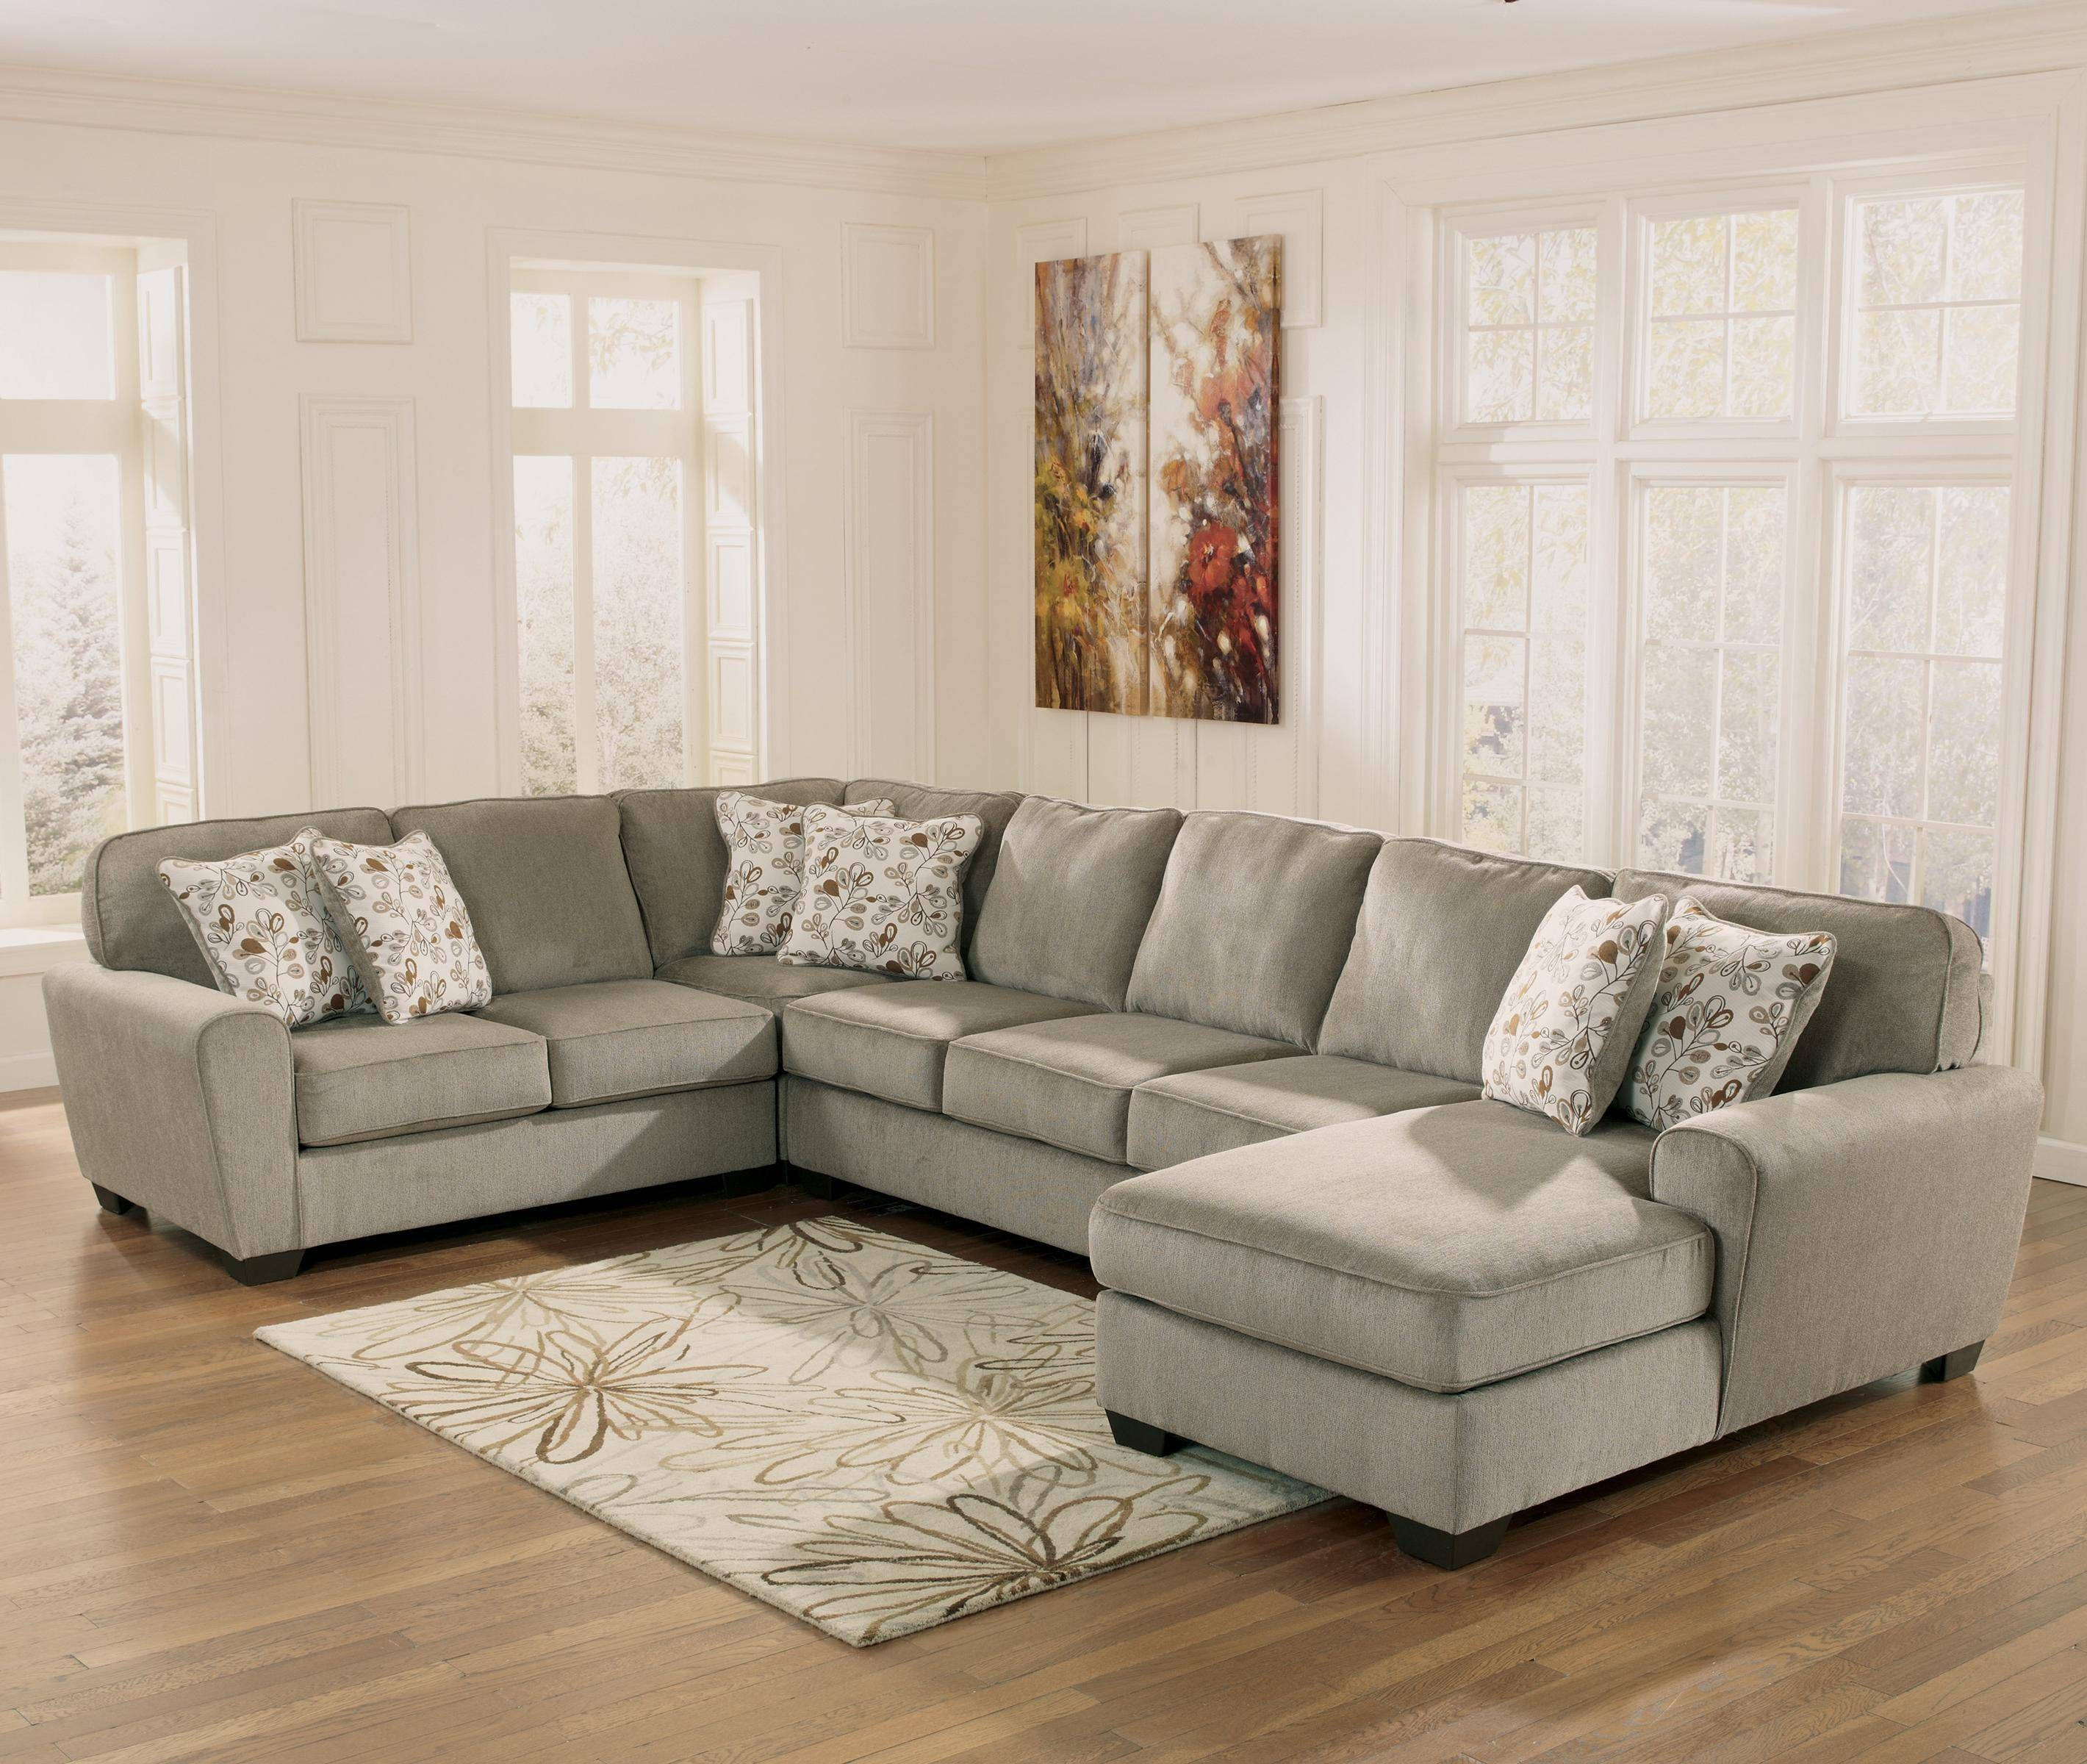 Ashley Furniture Patola Park - Patina 4-Piece Sectional With Right with Ashley Corduroy Sectional Sofas (Image 4 of 15)